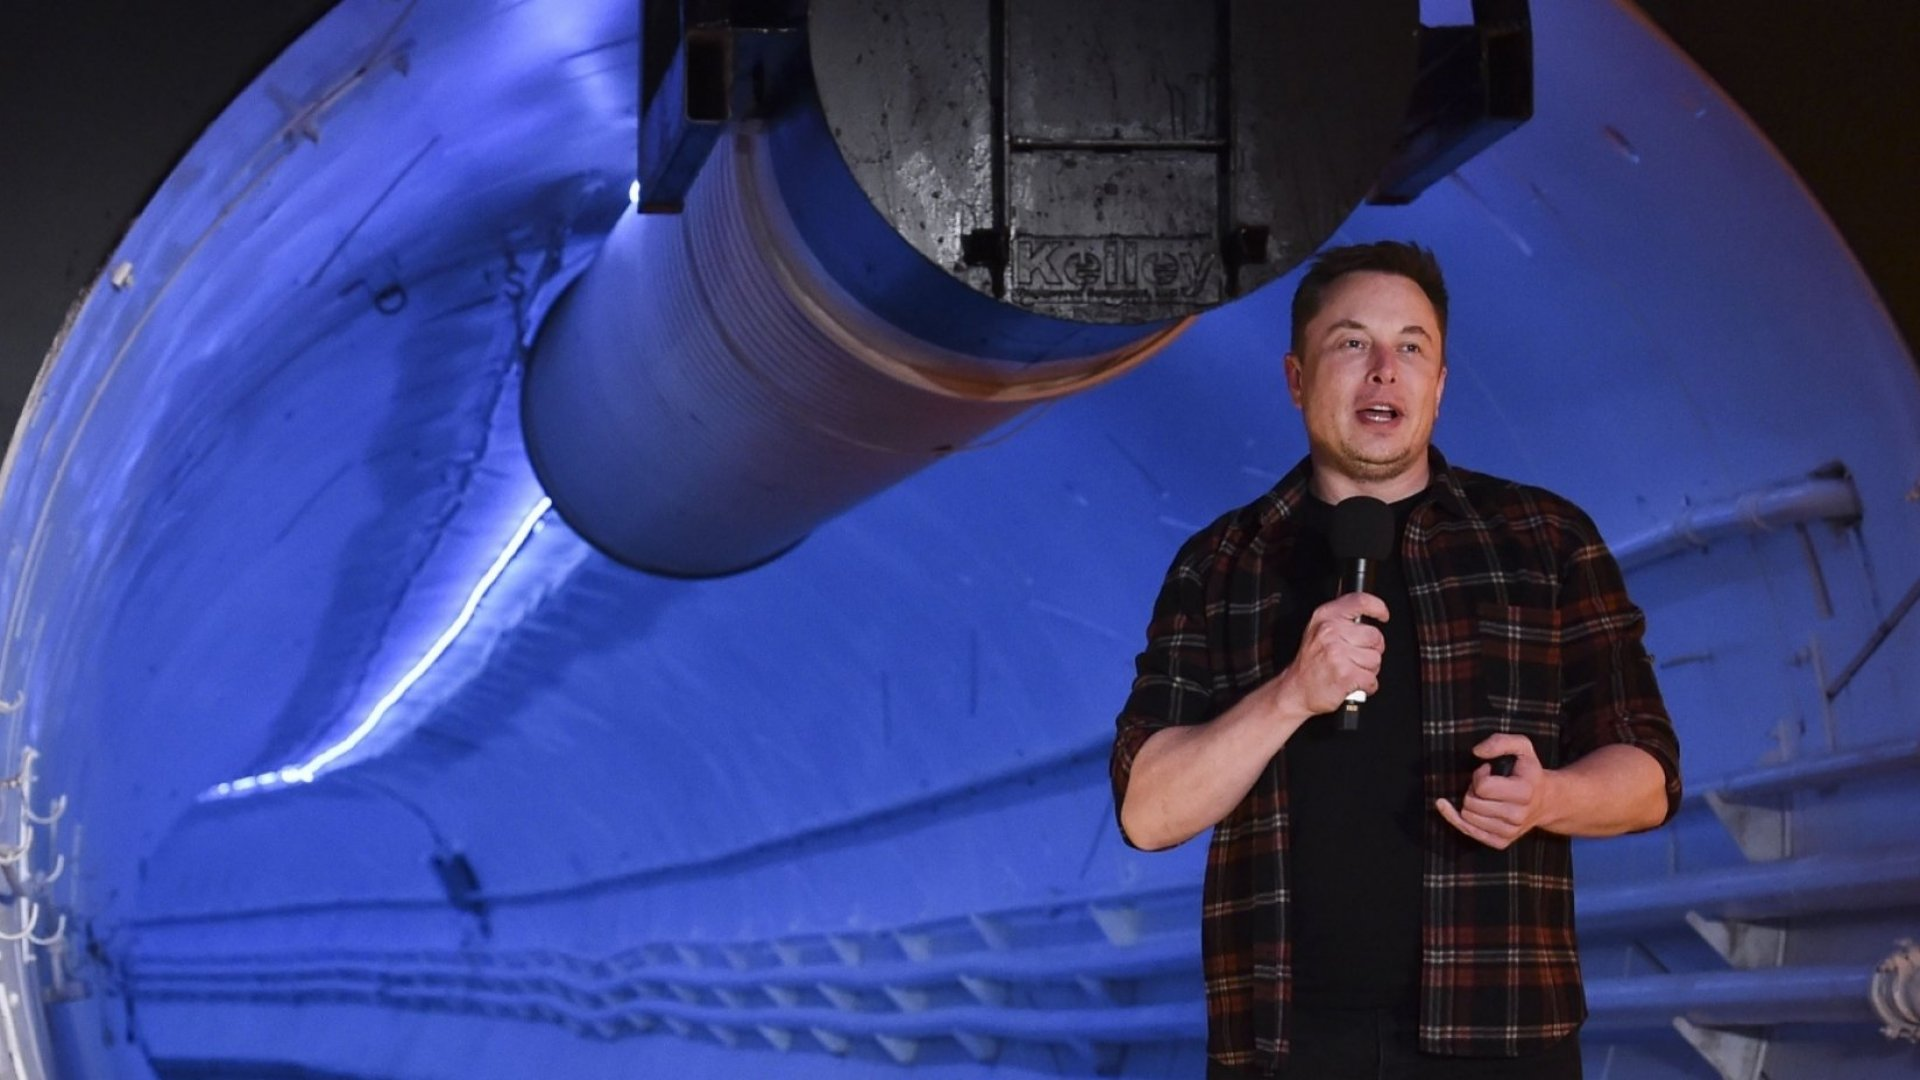 Elon Musk's First Boring Company Tunnel Will Open in Las Vegas in 2020 'Hopefully'